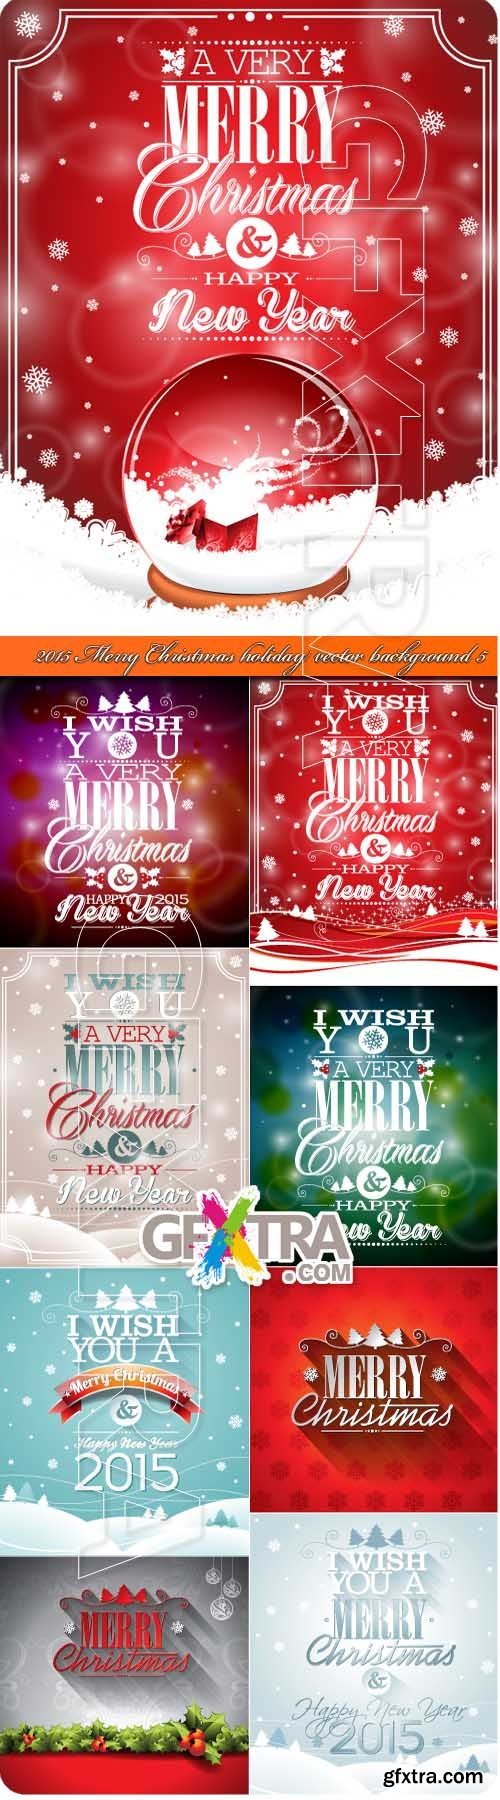 2015 Merry Christmas holiday vector background 5